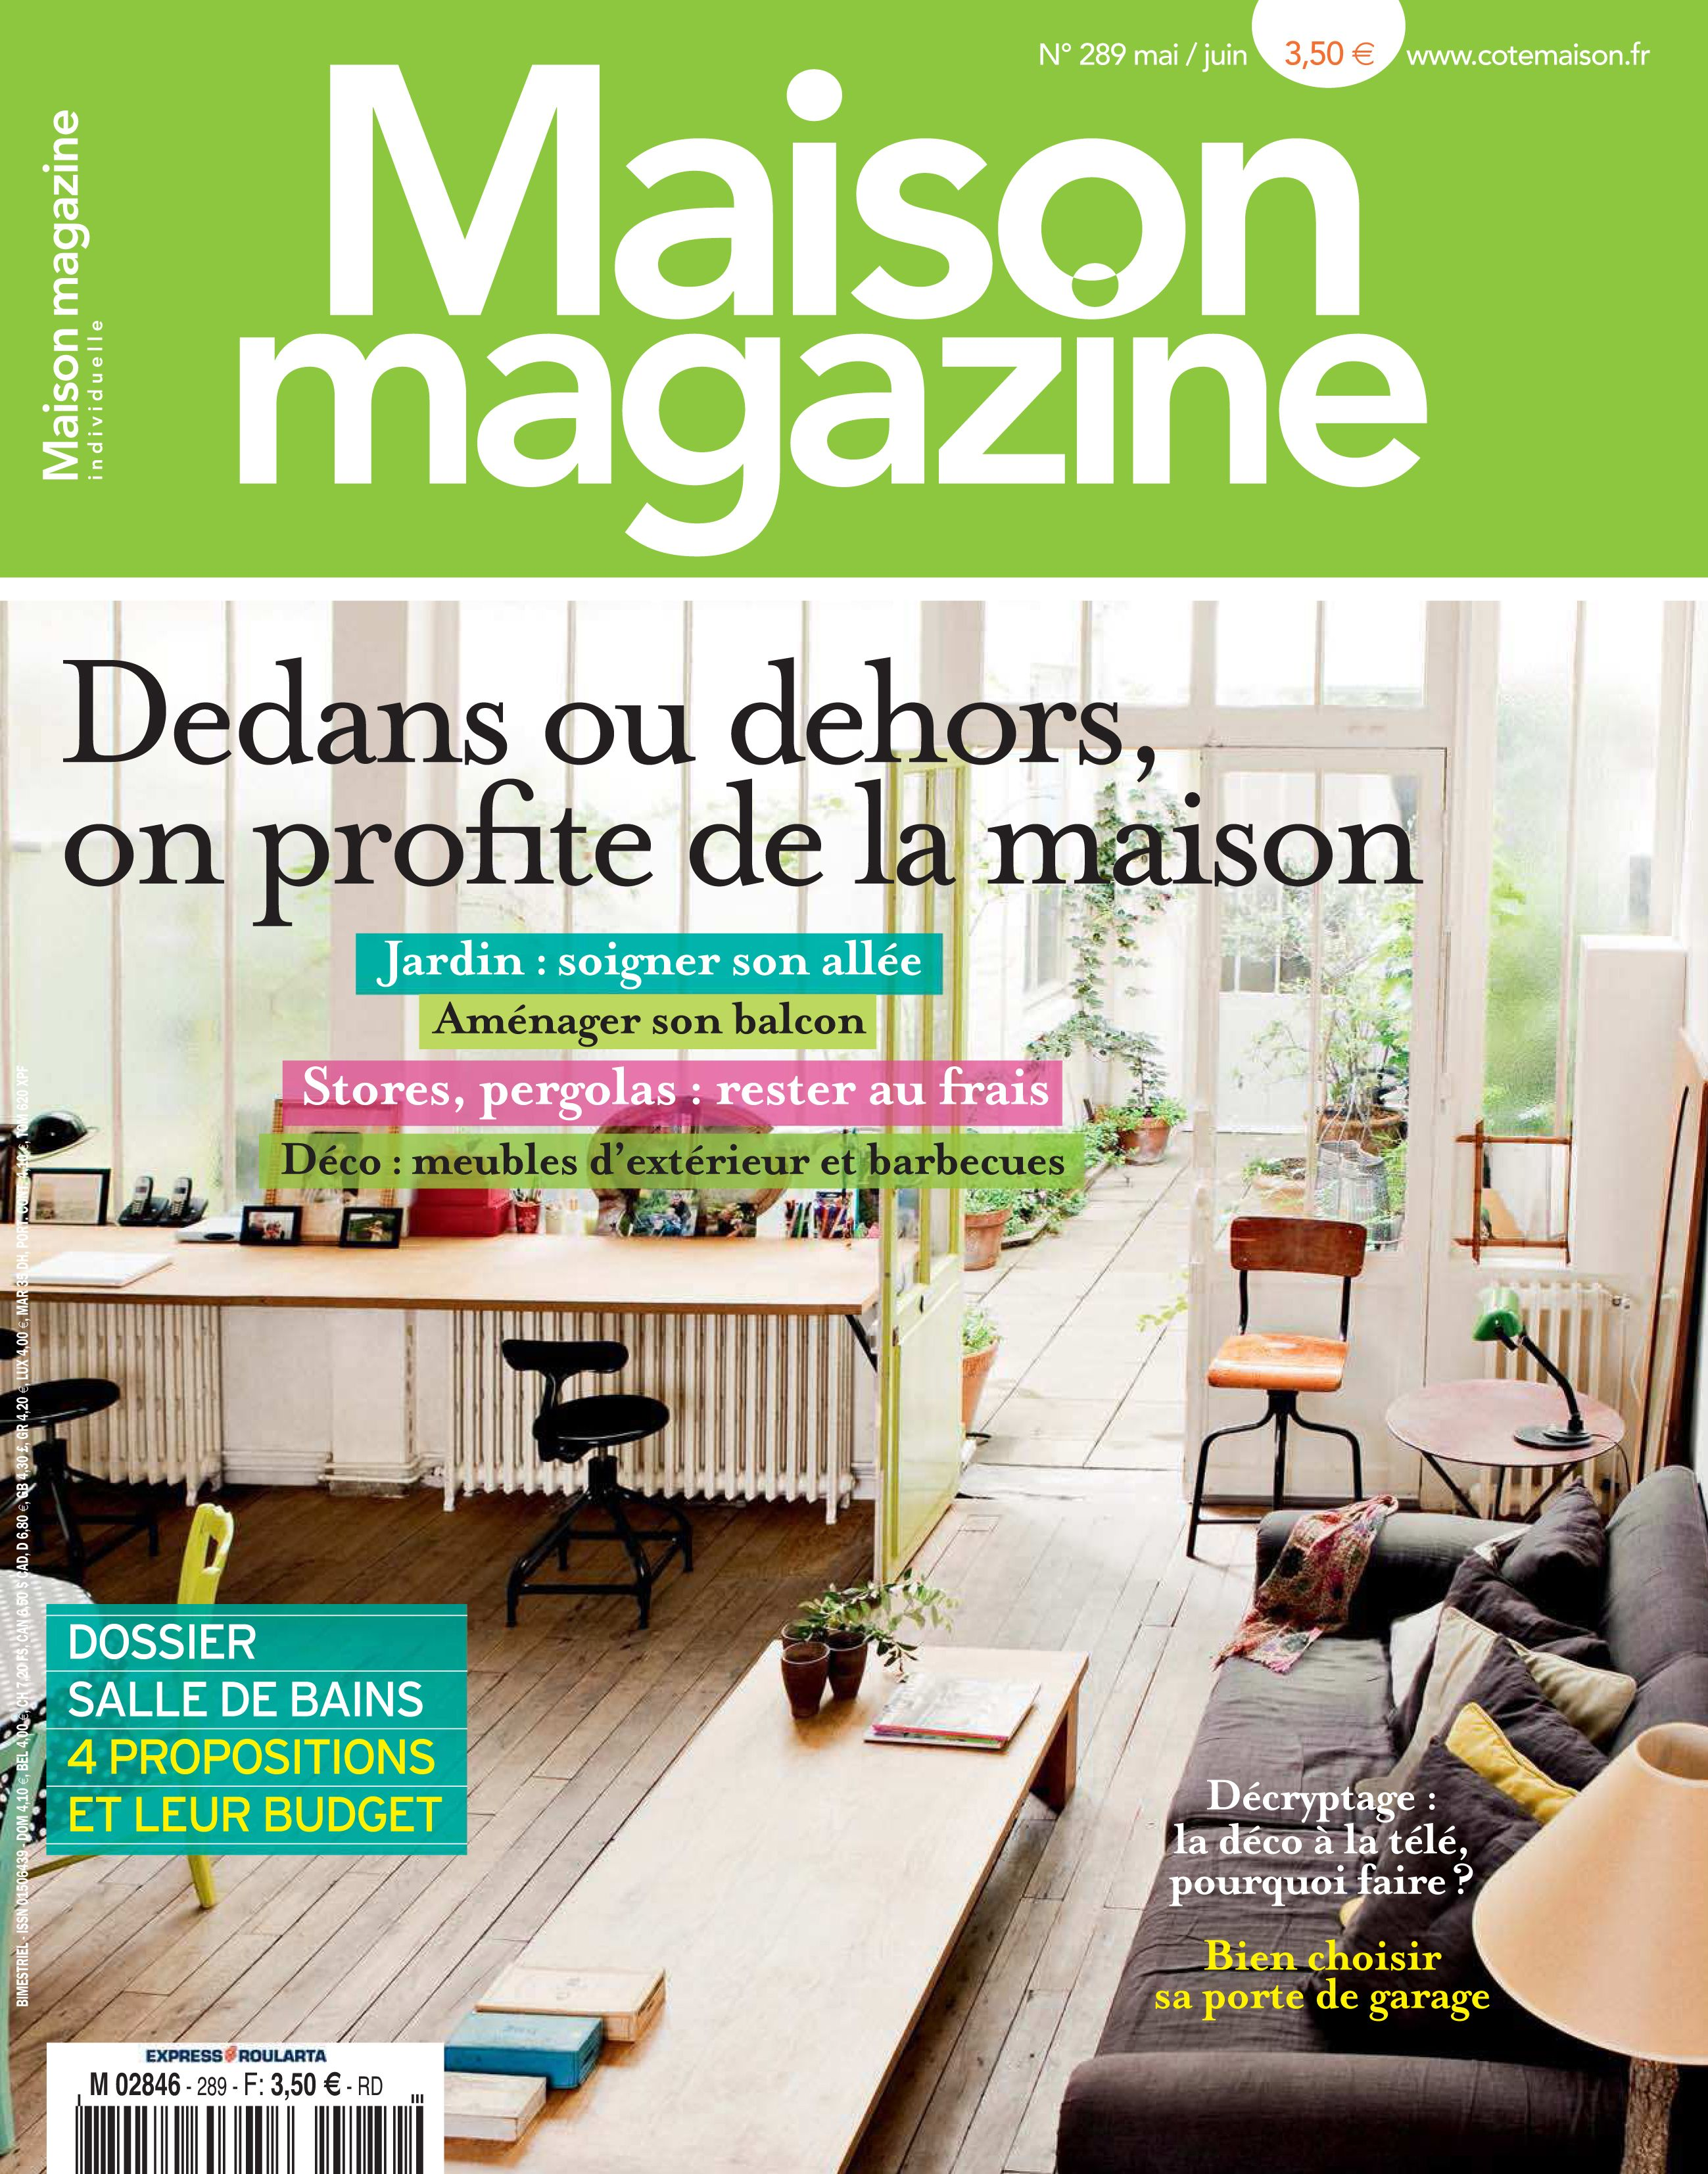 Maison Décoration Magazine Maison Magazine May-june 2013 | Cloison Vitrée, Verrieres